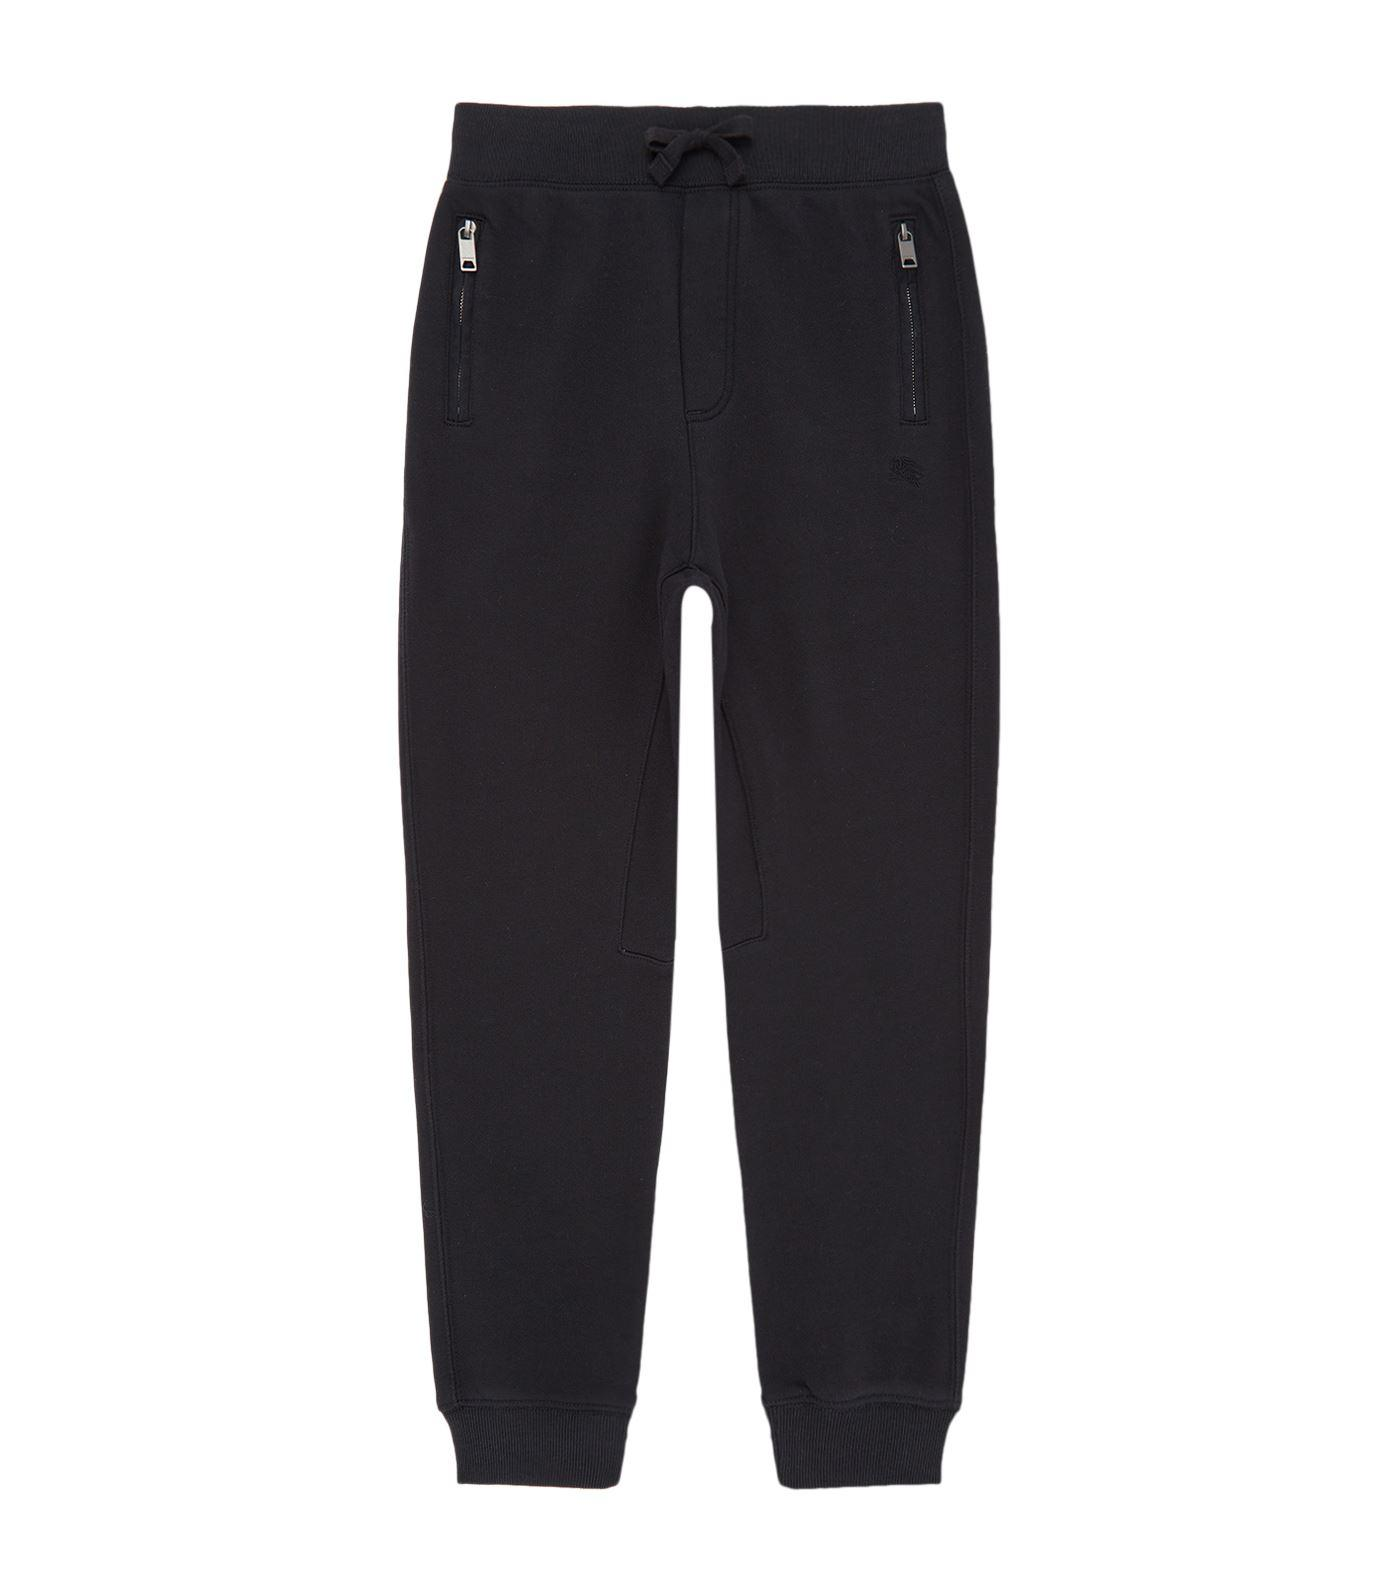 Burberry Phill Sweatpants 4 Years - 12 Years In Black